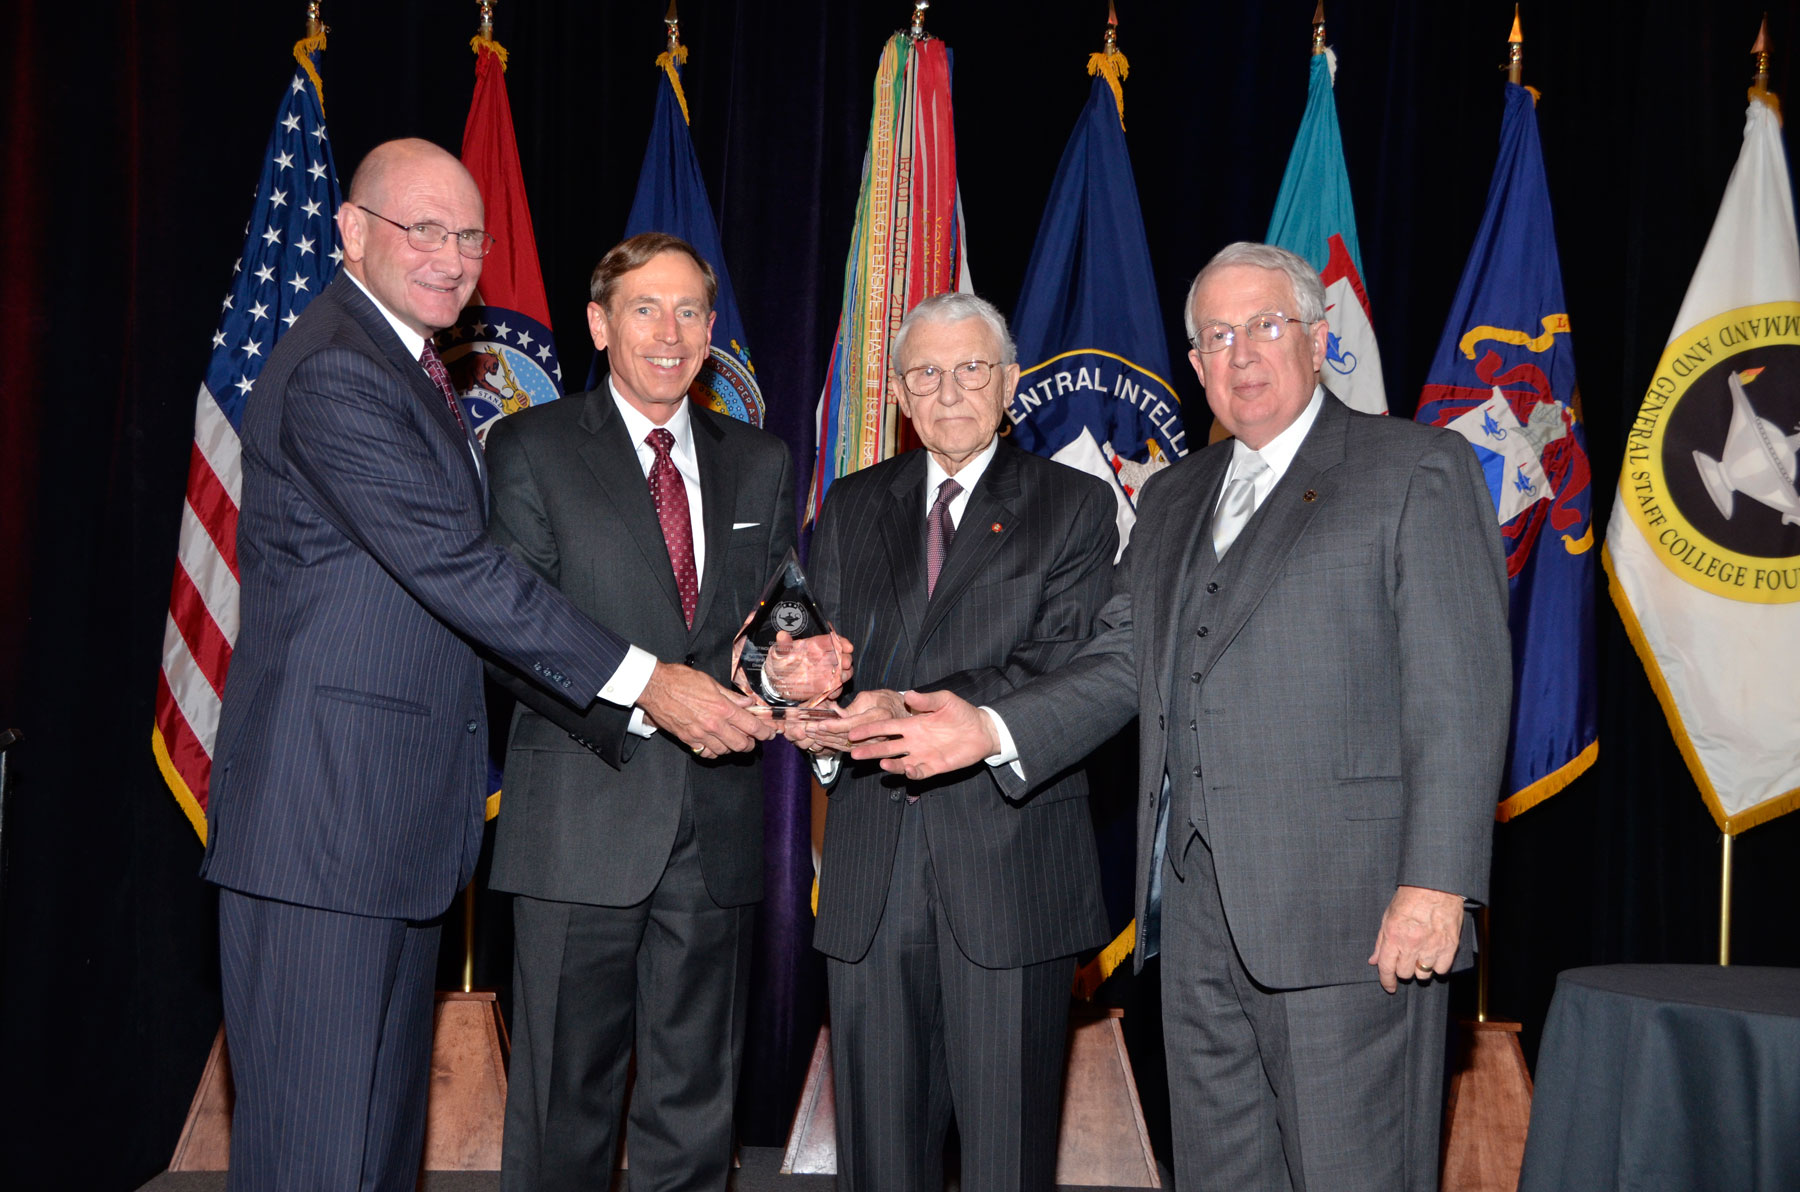 David H. Petraeus, retired Army General and current Director of the Central Intelligence Agency, is presented with the CGSC Foundation's 2012 Distinguished Leadership Award from Foundation leadership at a dinner banquet May 10, in Kansas City, Mo. From left: Hyrum Smith, Foundation President; Petraeus; Lt. Gen. (Ret.) Robert Arter, Chairman; and Lt. Gen. (Ret.) John Miller, Vice Chairman. Photo by Phillips Photography/Kansas City